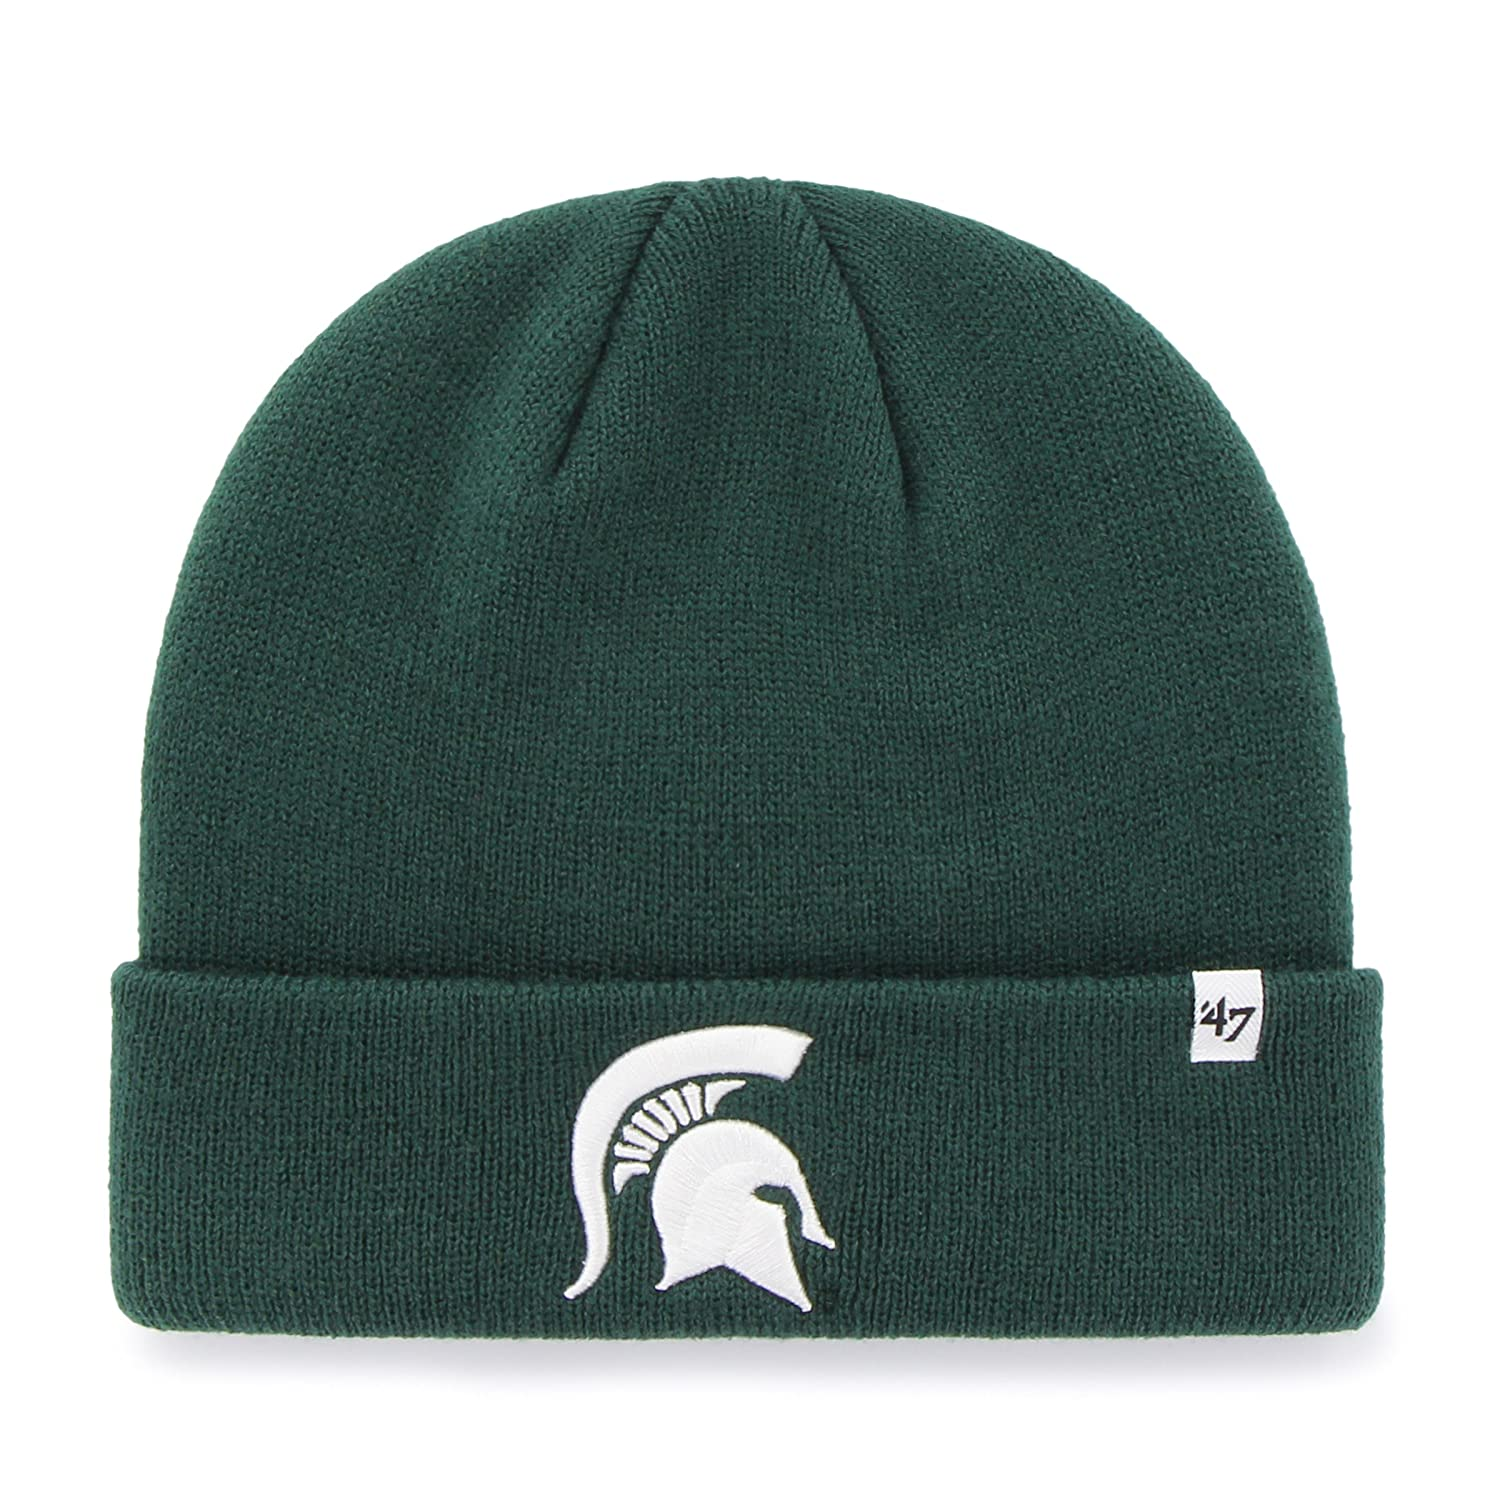 d6885677e5b Amazon.com    47 NCAA Oregon Ducks Raised Cuff Knit Beanie